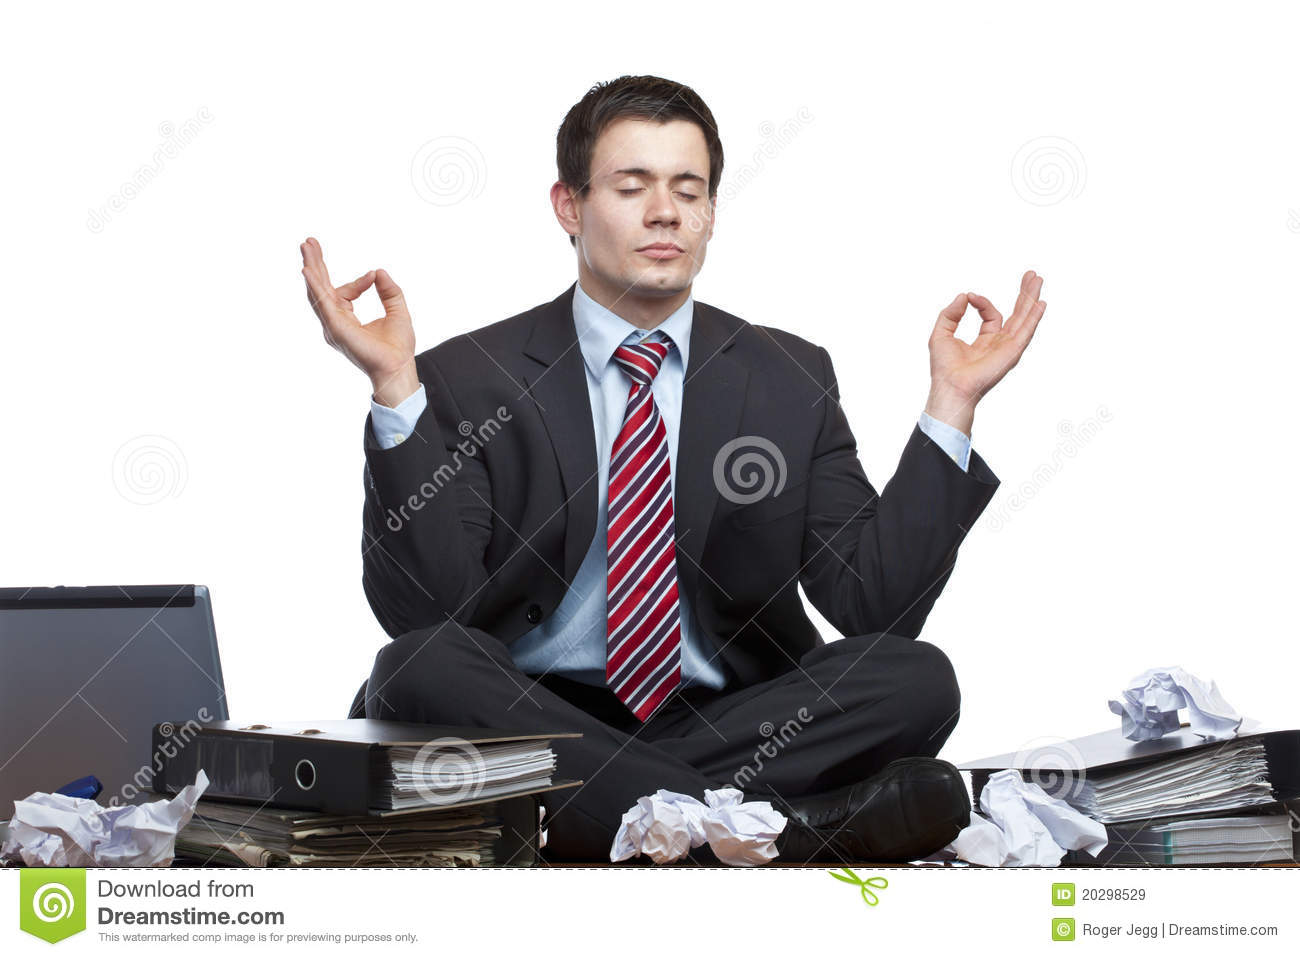 Stressed business man meditates at desk in office